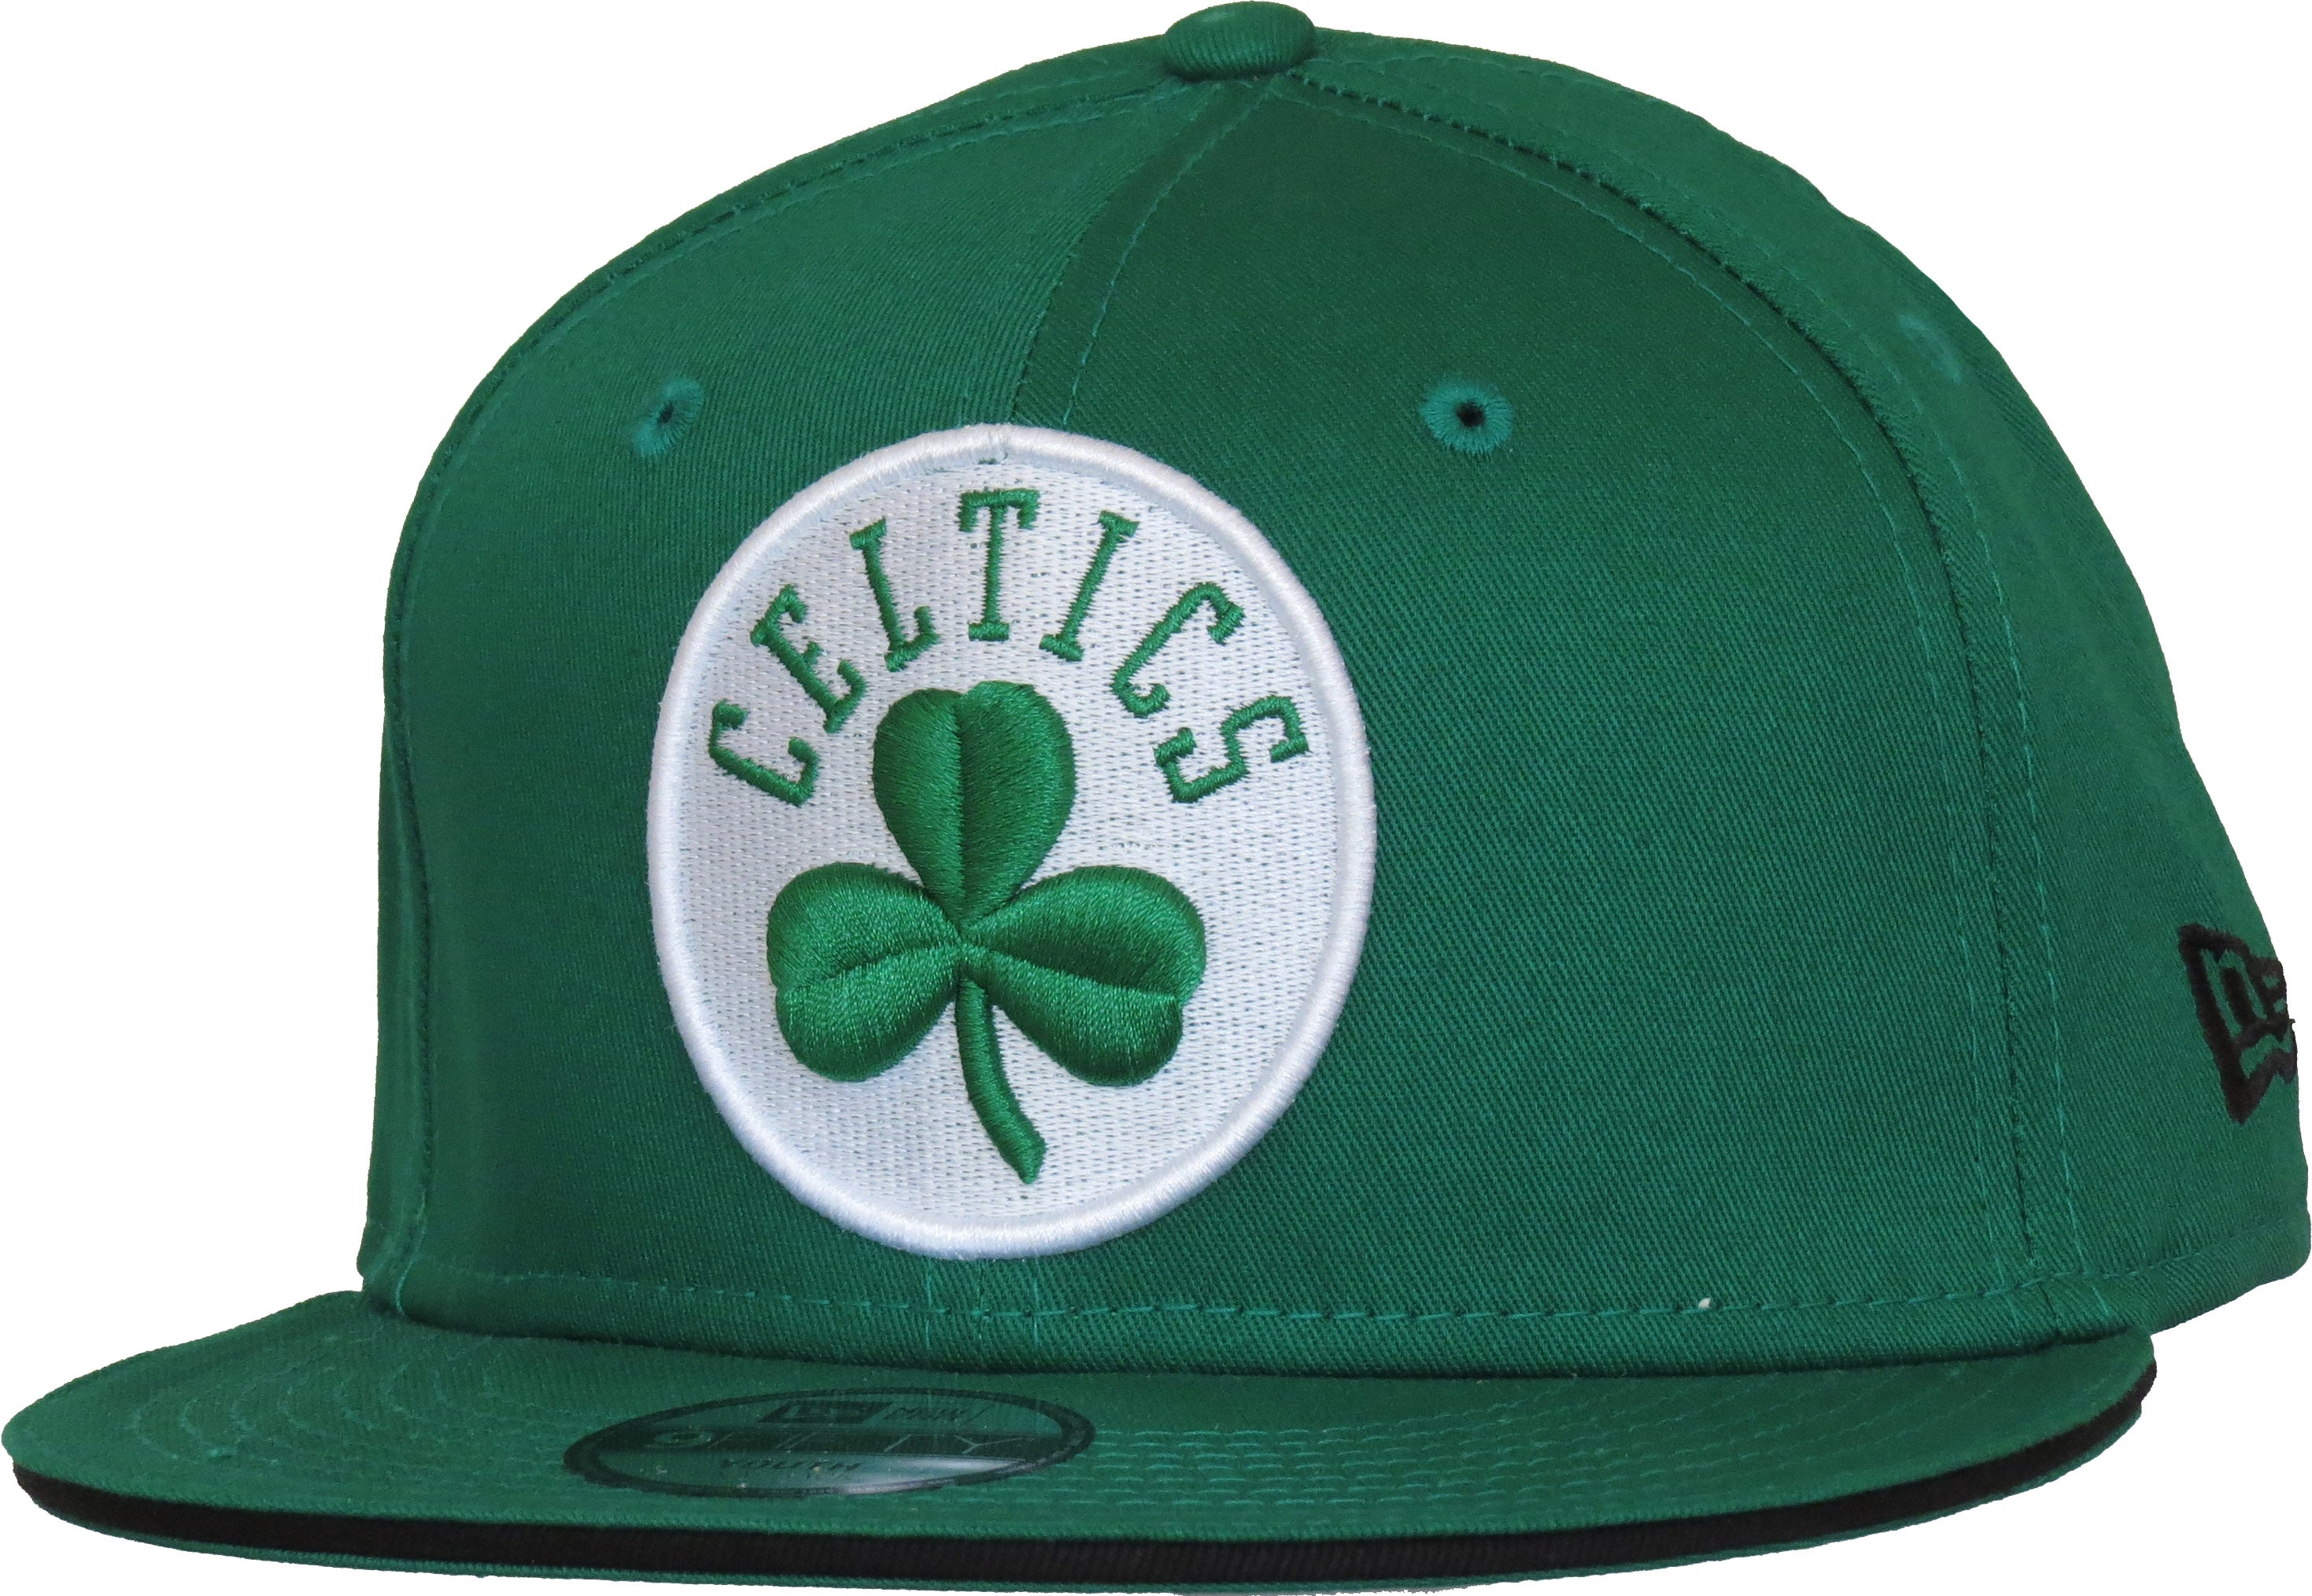 Boston Celtics New Era 950 Kids Classic TM Snapback Cap (Age 5 - 10 years  ... 39586f89c2f